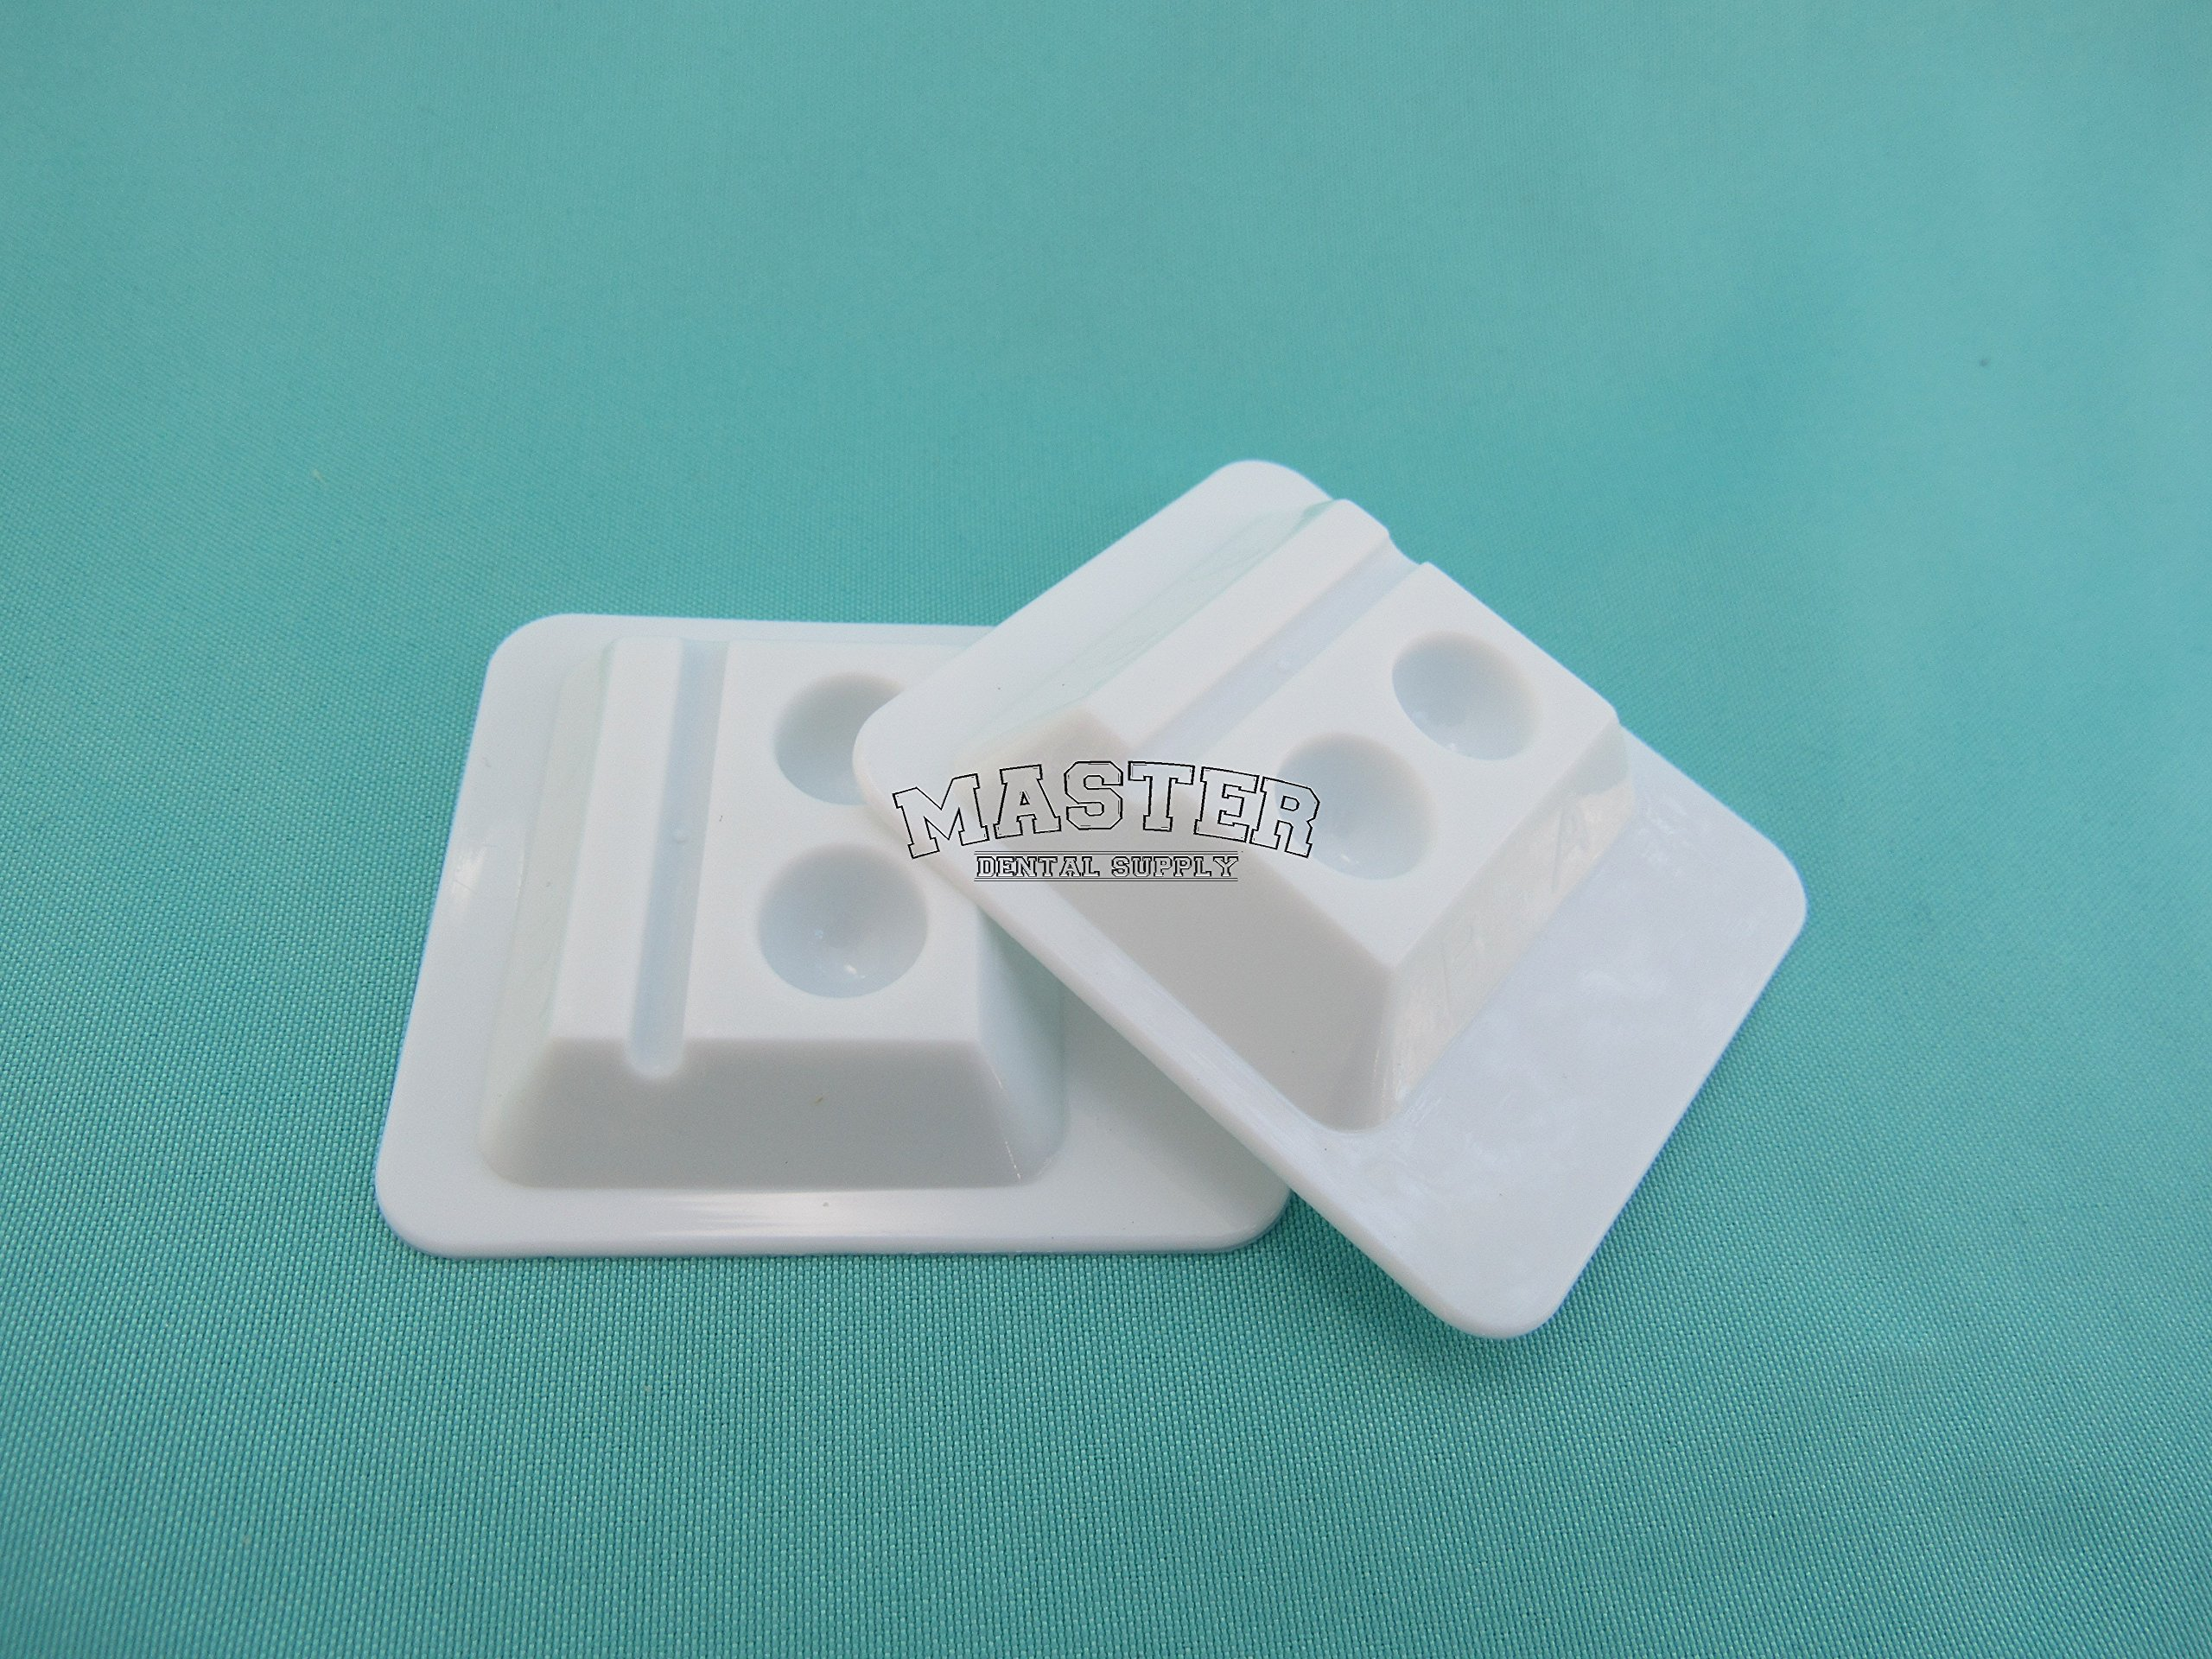 50 Dental Mixing Wells 2 Well WHITE Mixing Tray 2 Holes. Ships from USA